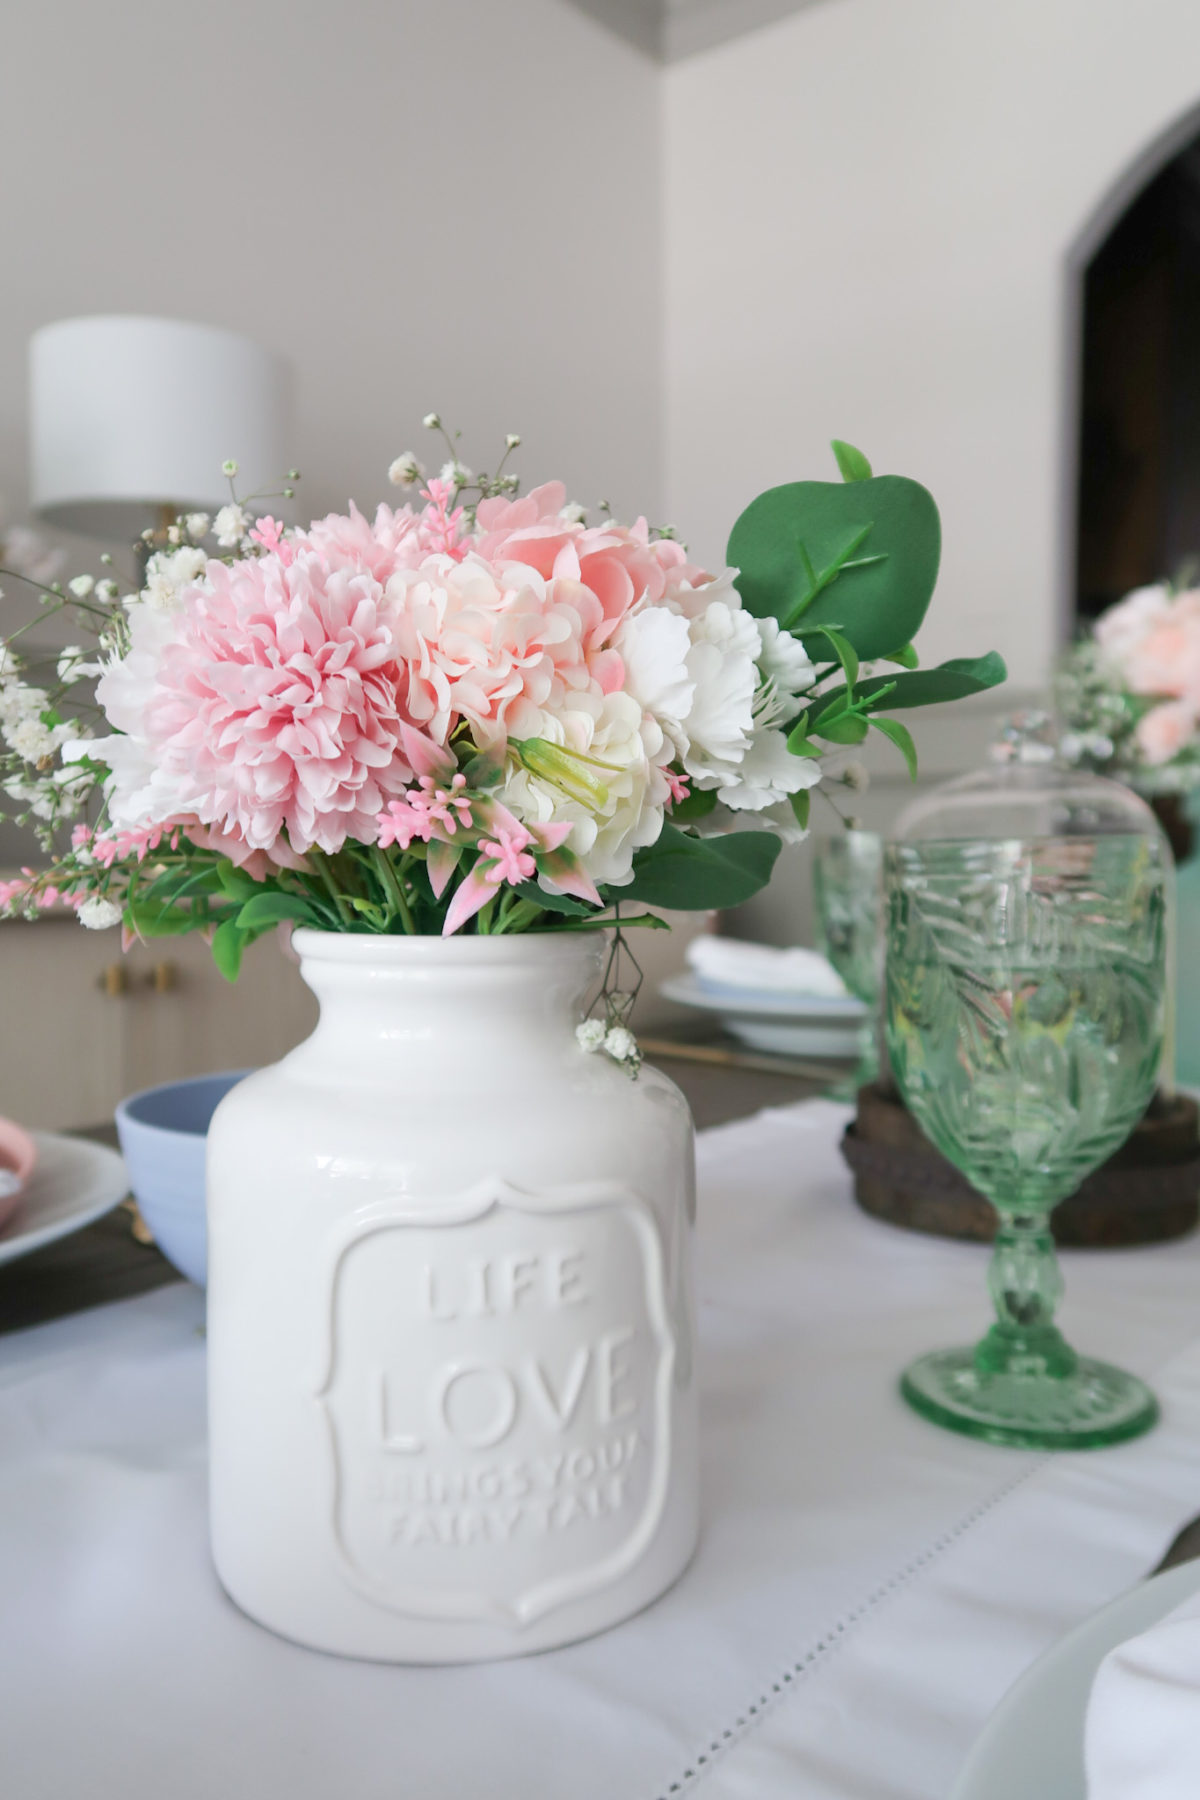 Spring Decor, Faux Flowers with vase